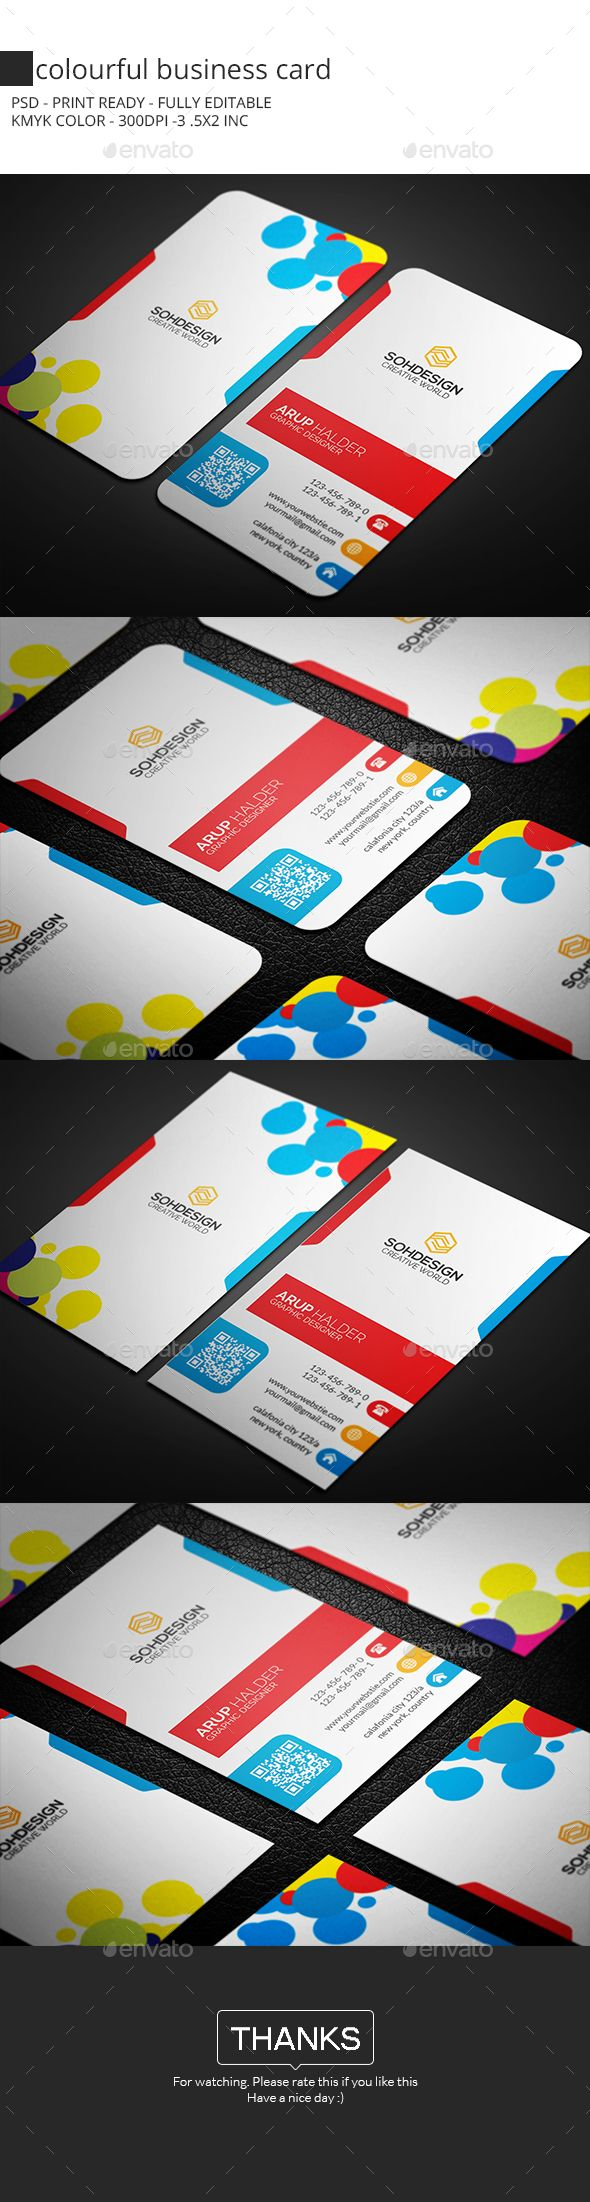 Colourful Business Card Template PSD #design Download: http://graphicriver.net/item/colourful-business-card/14453639?ref=ksioks